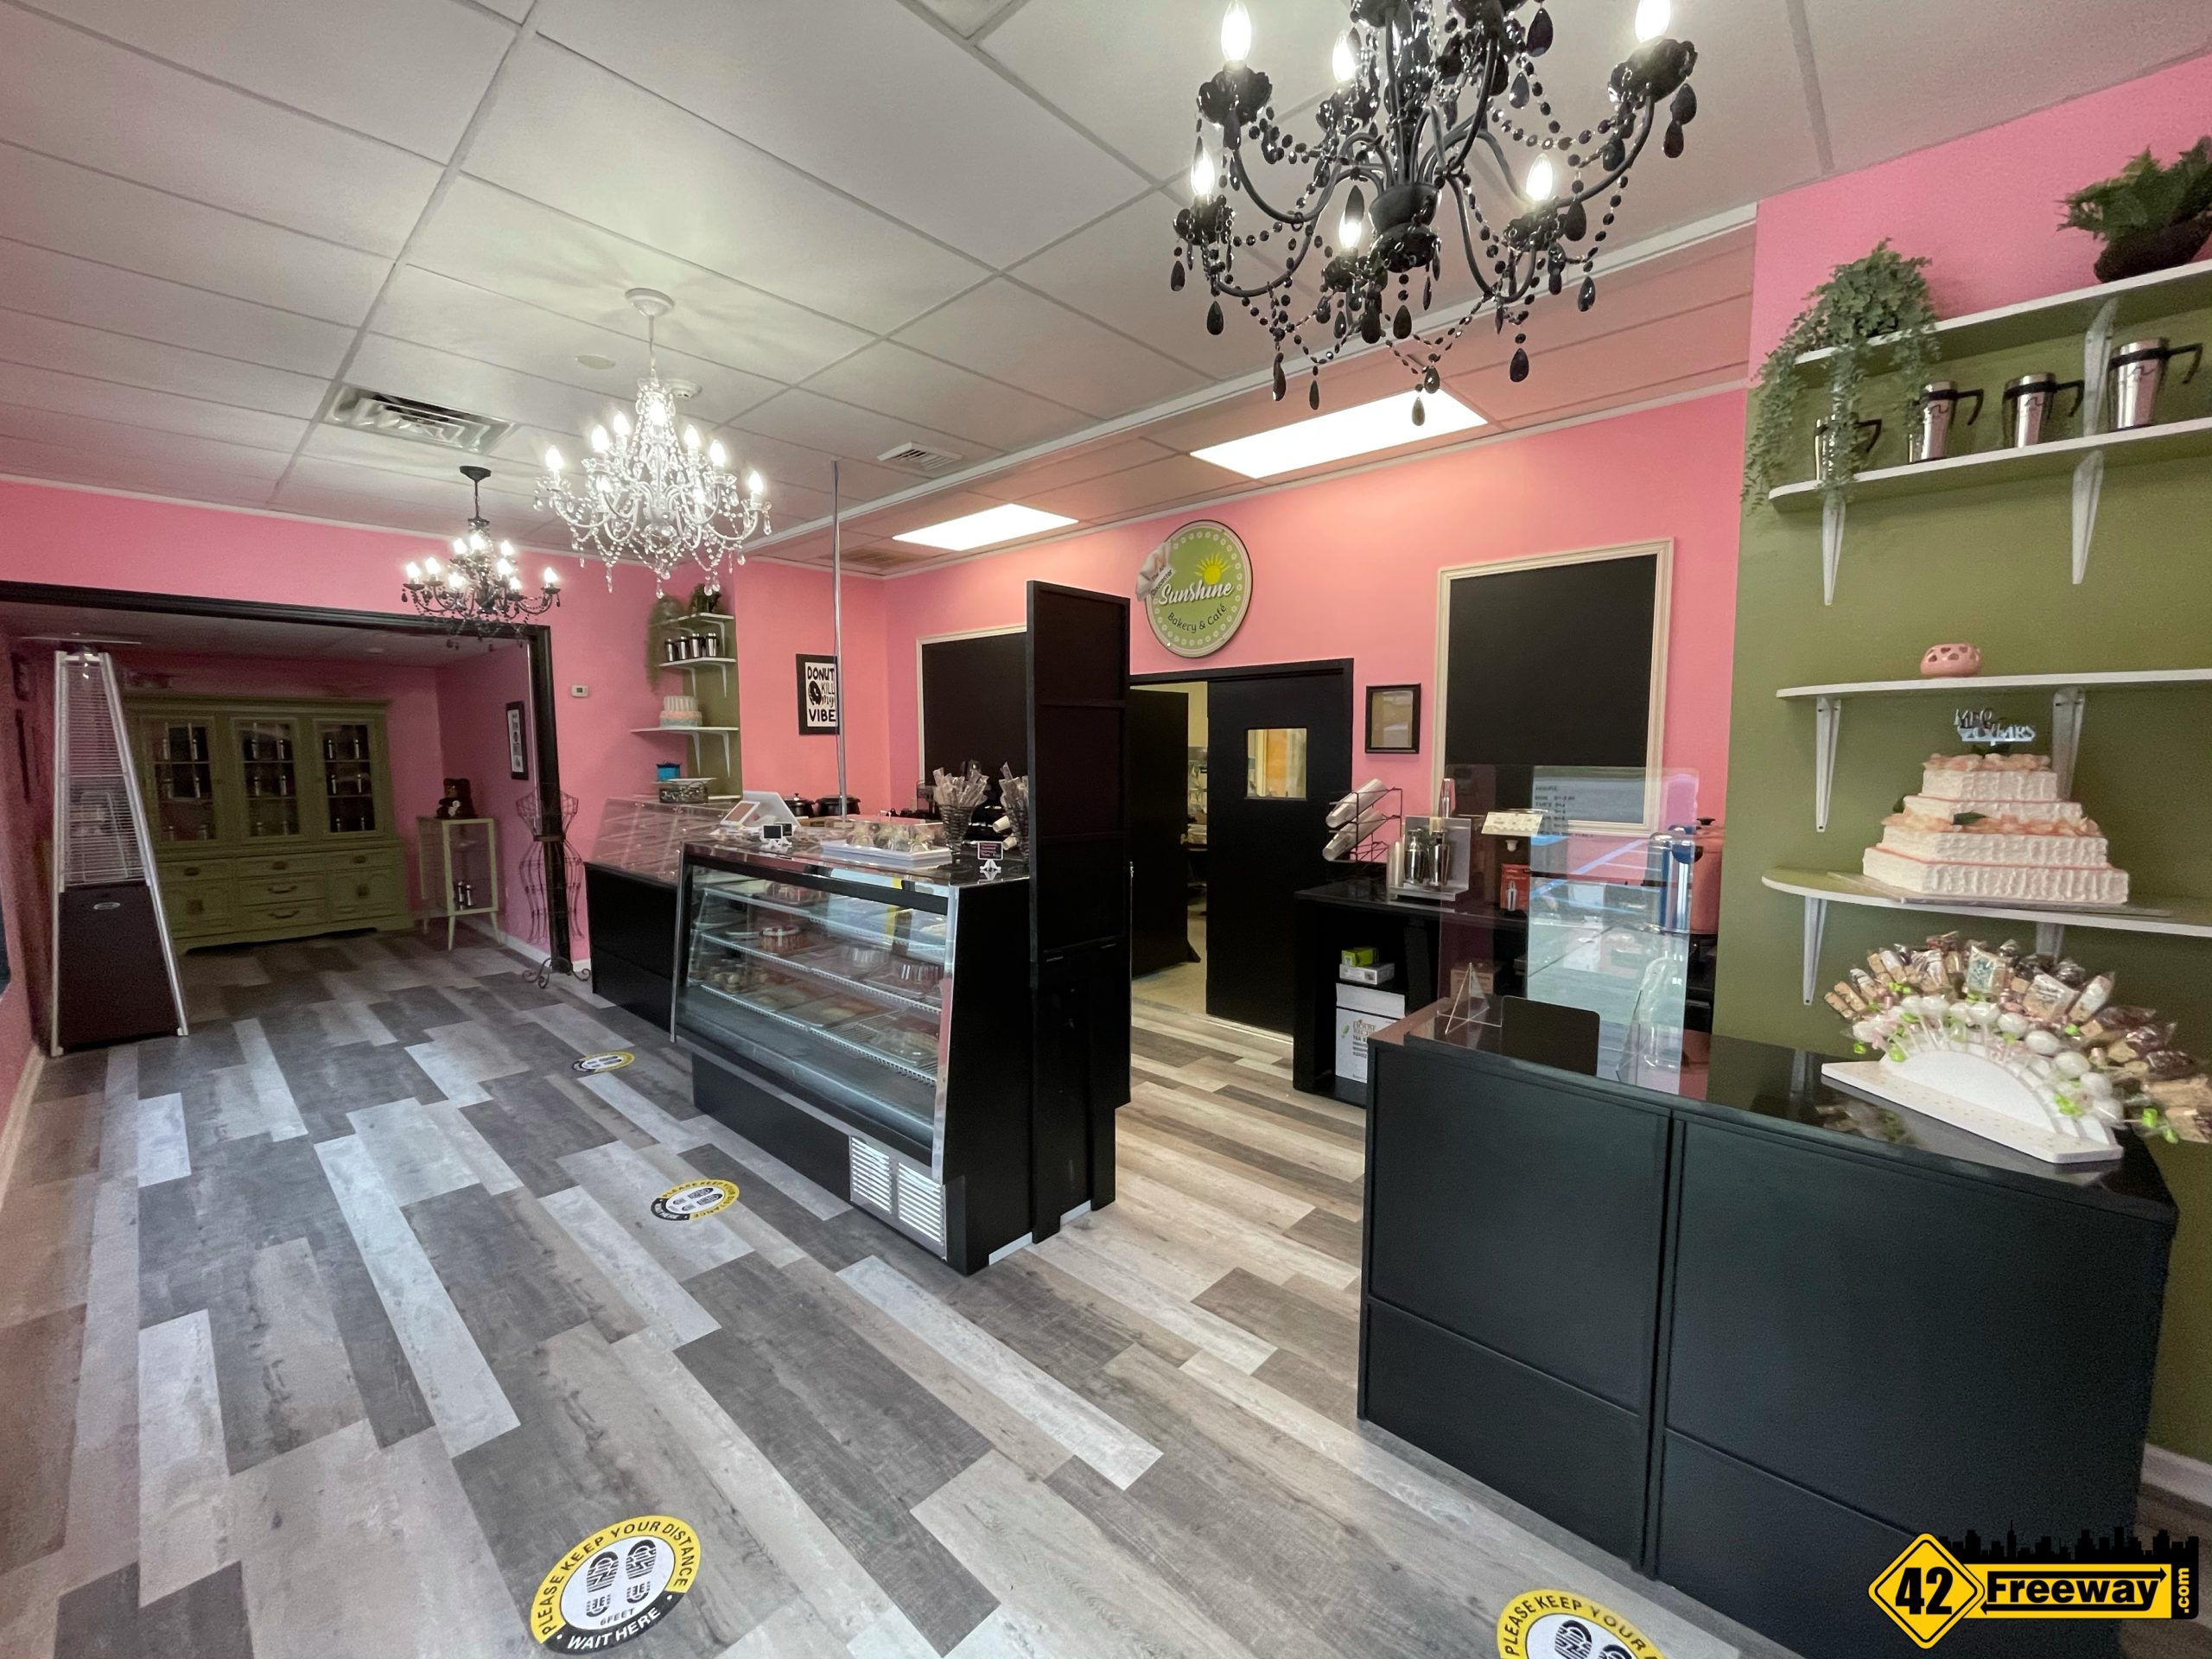 Sunshine Bakery & Cafe is OPEN in Washington Township!  Beautifully Redesigned!  Supports ARC Programs.  Read On For Hours